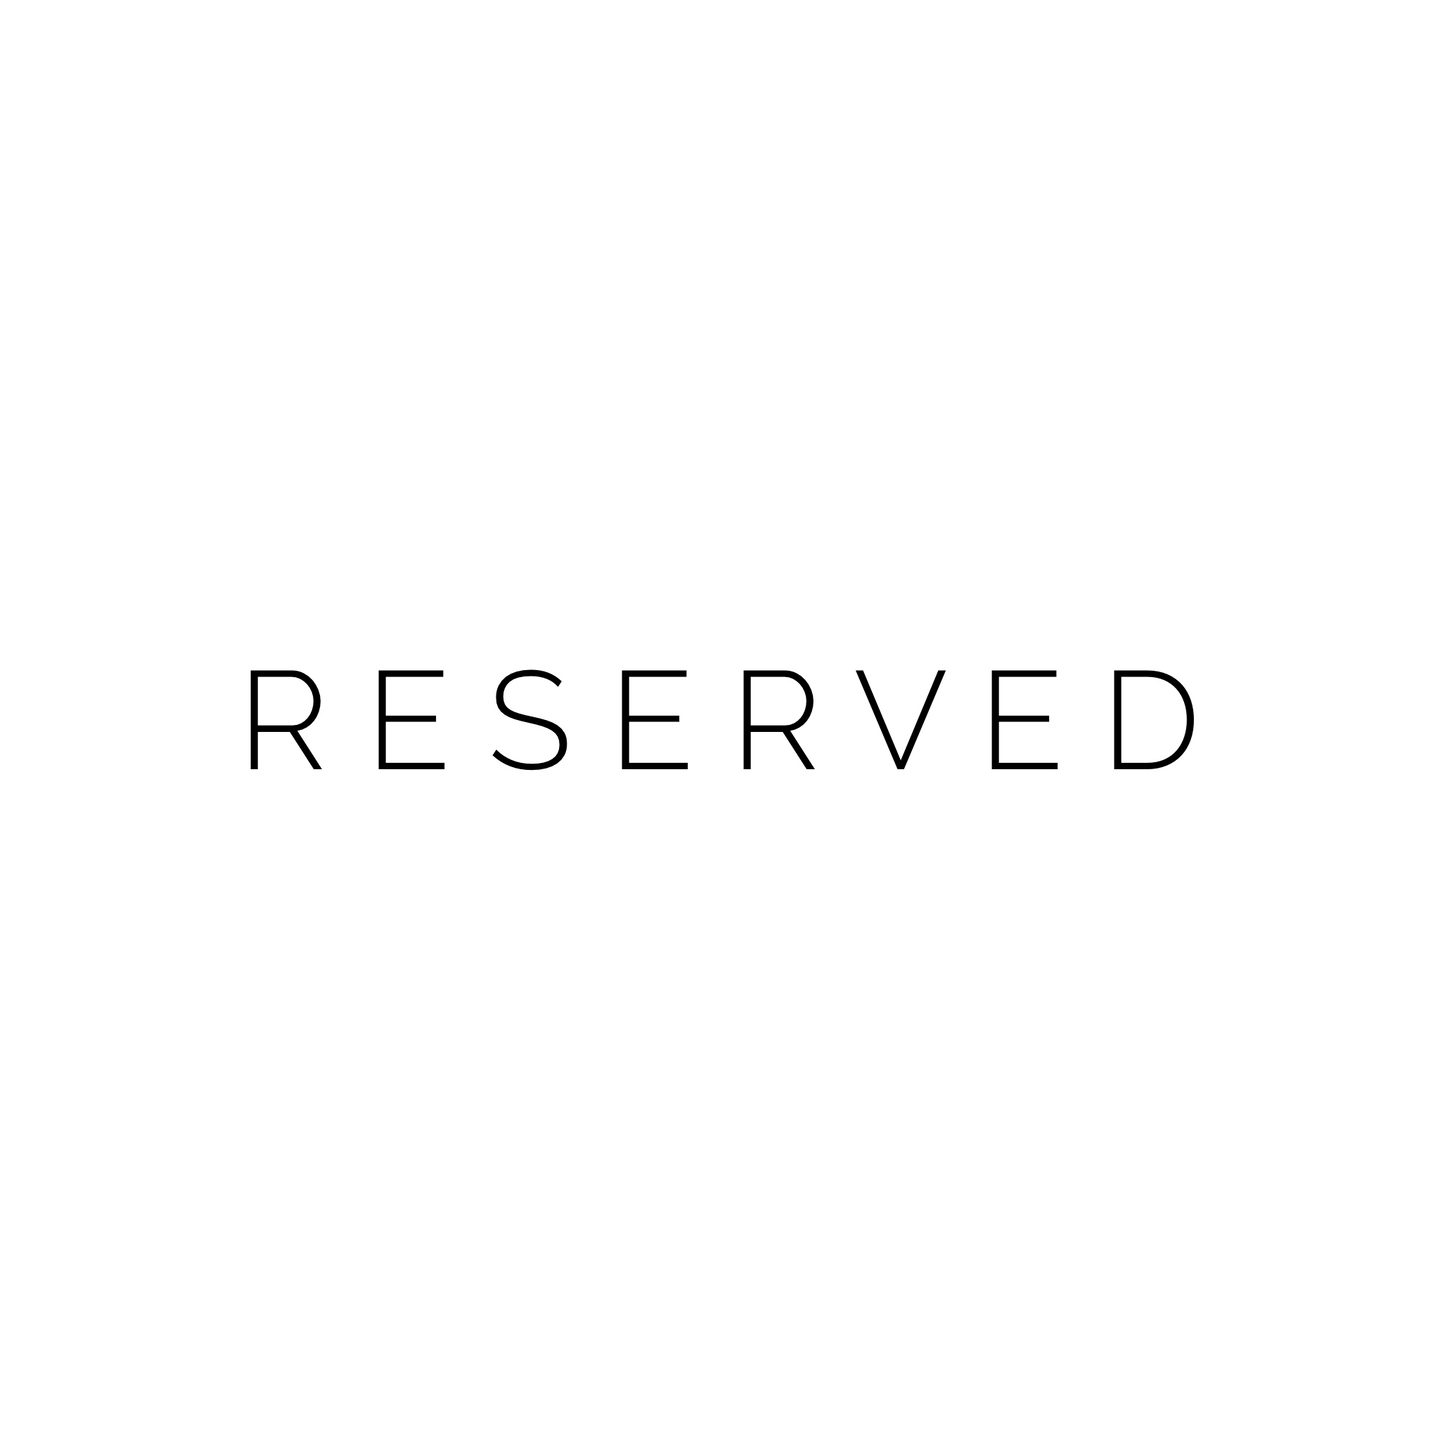 RESERVED FOR M. Fowler